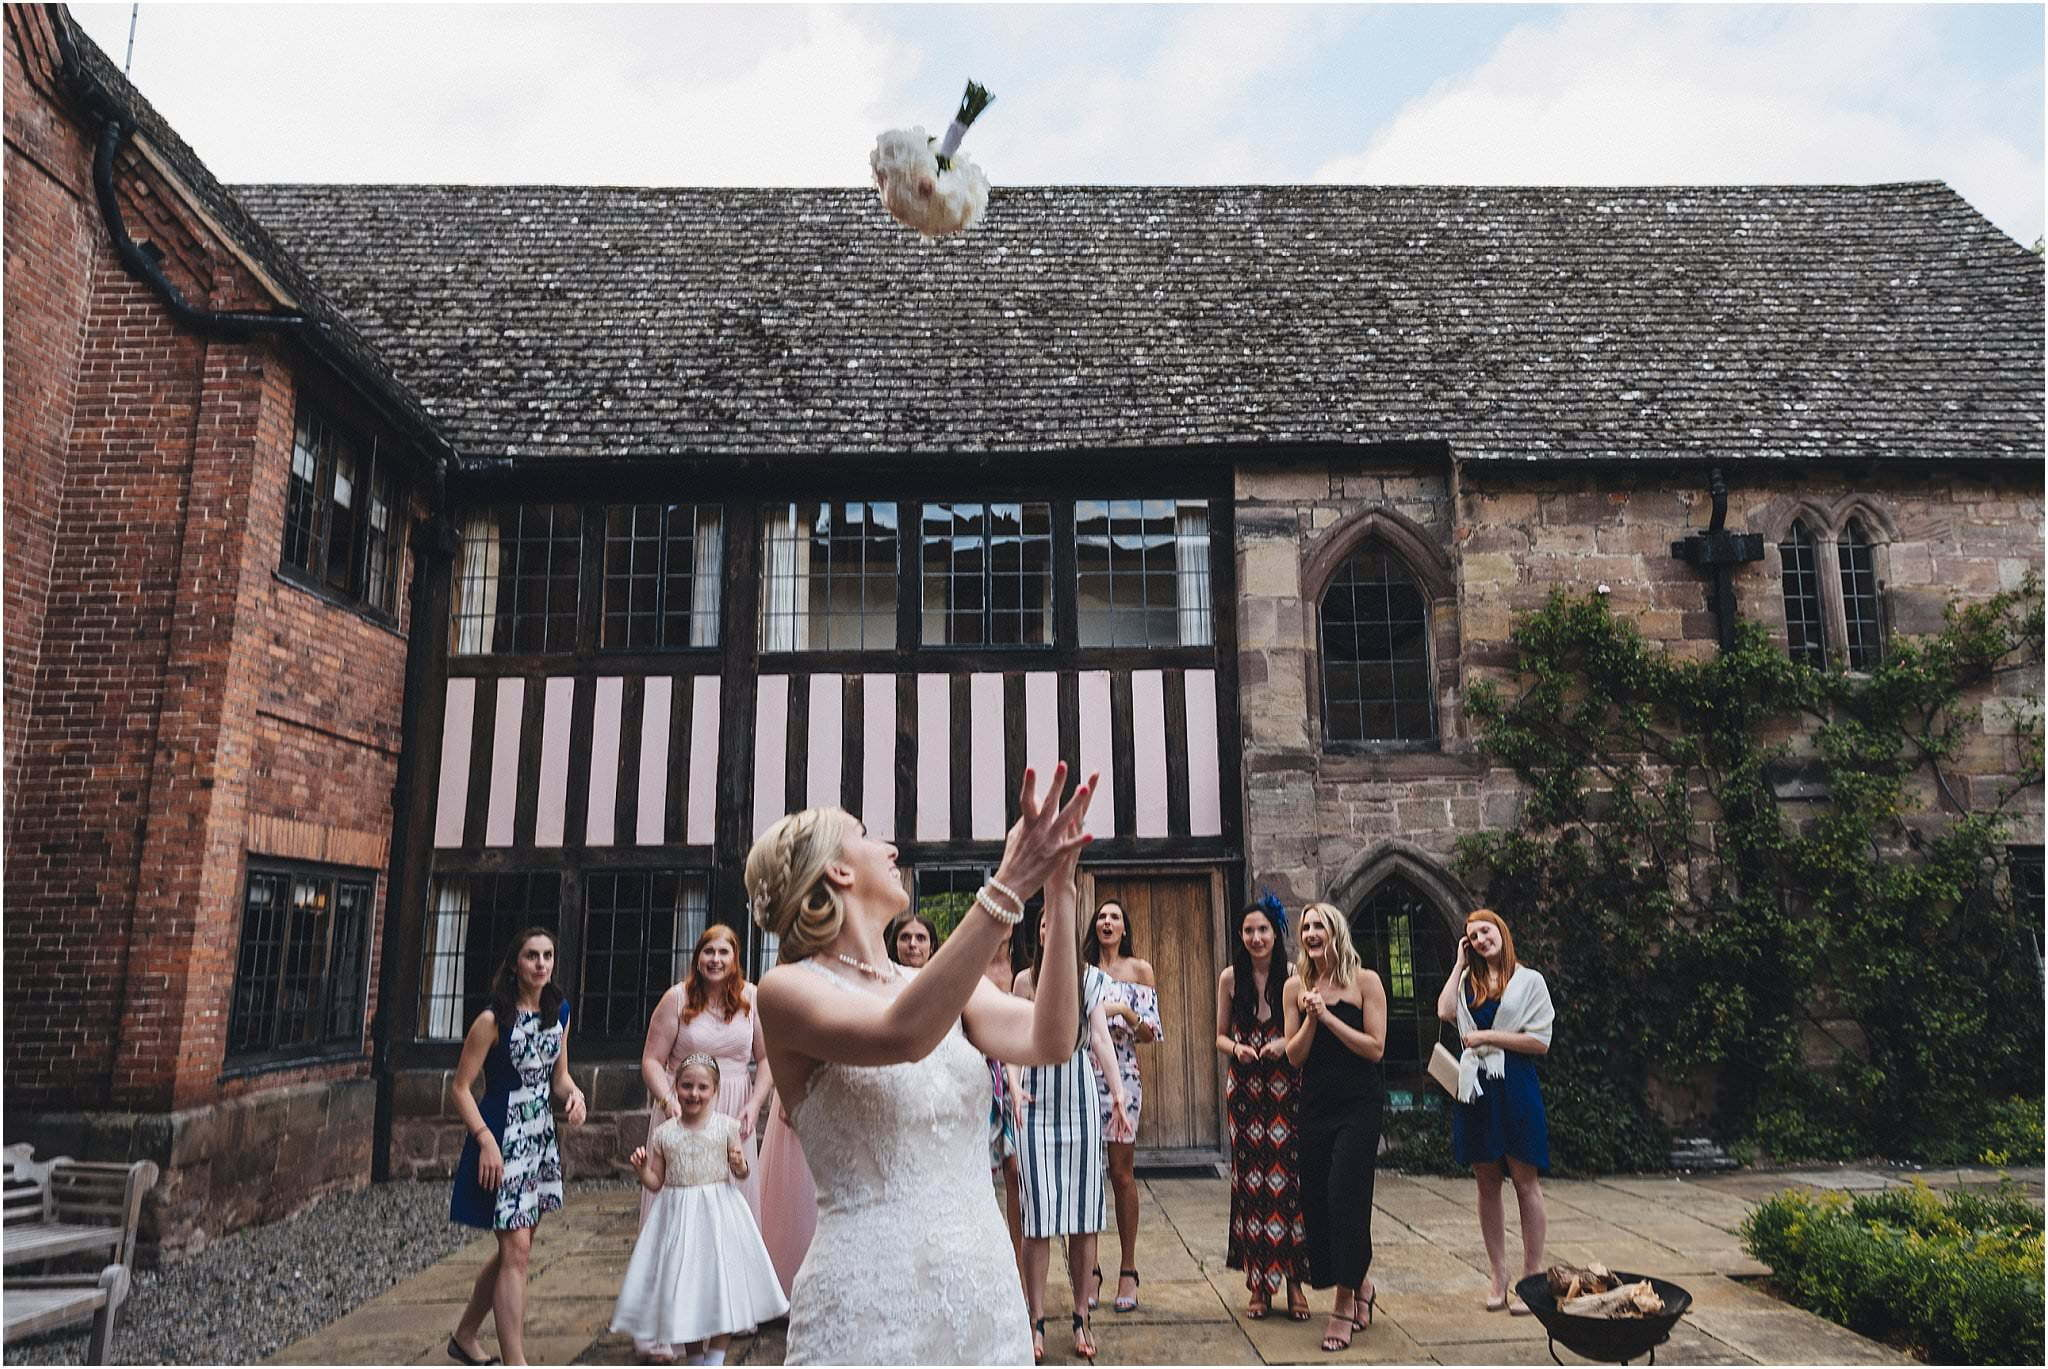 bouquet toss Brinsop courtyard